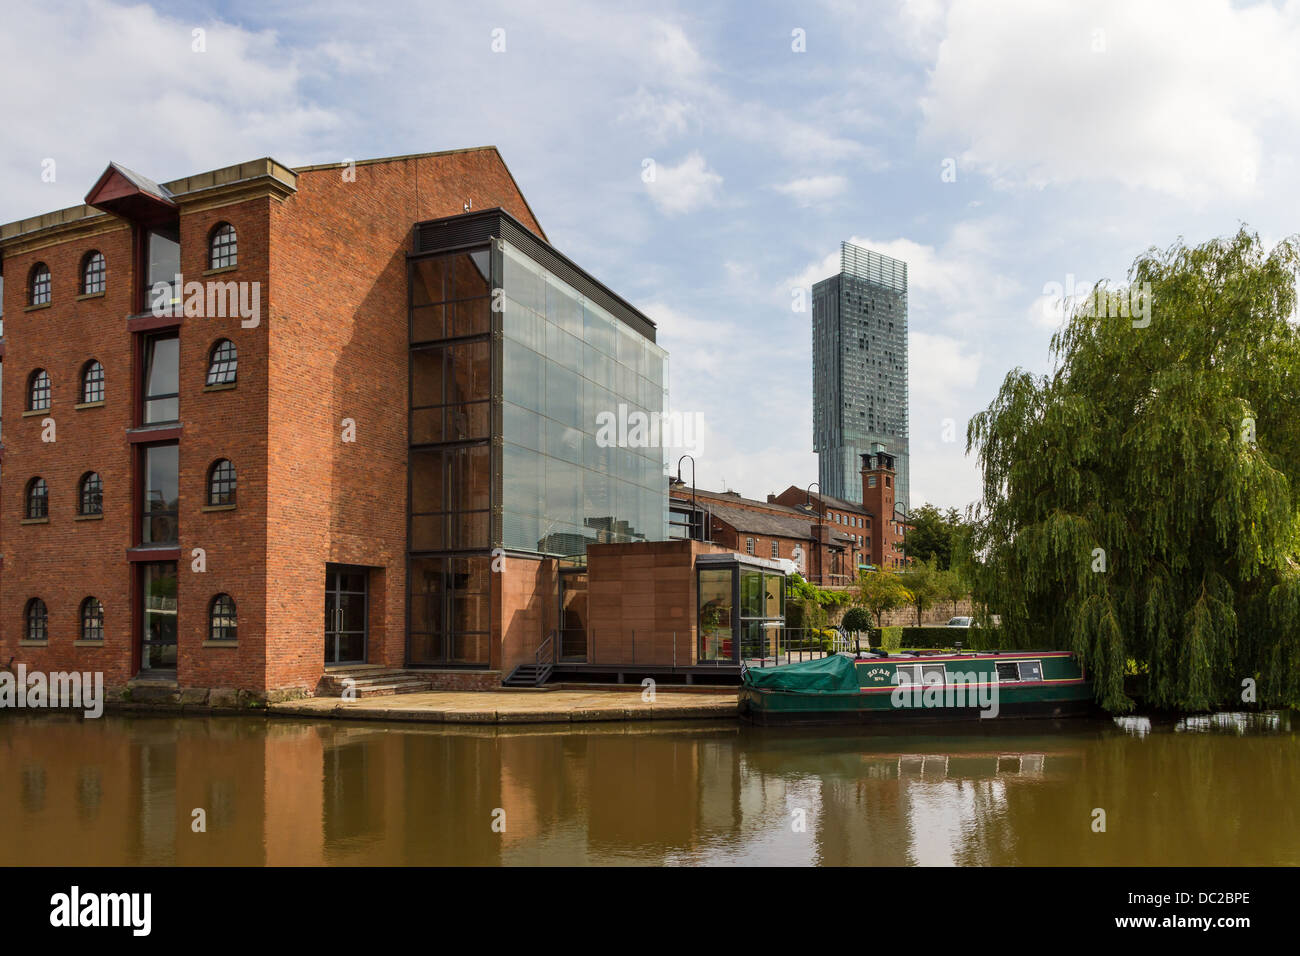 Bridgewater canal with narrow boat, redeveloped warehouse and Beetham Tower, Castlefield, Manchester. - Stock Image